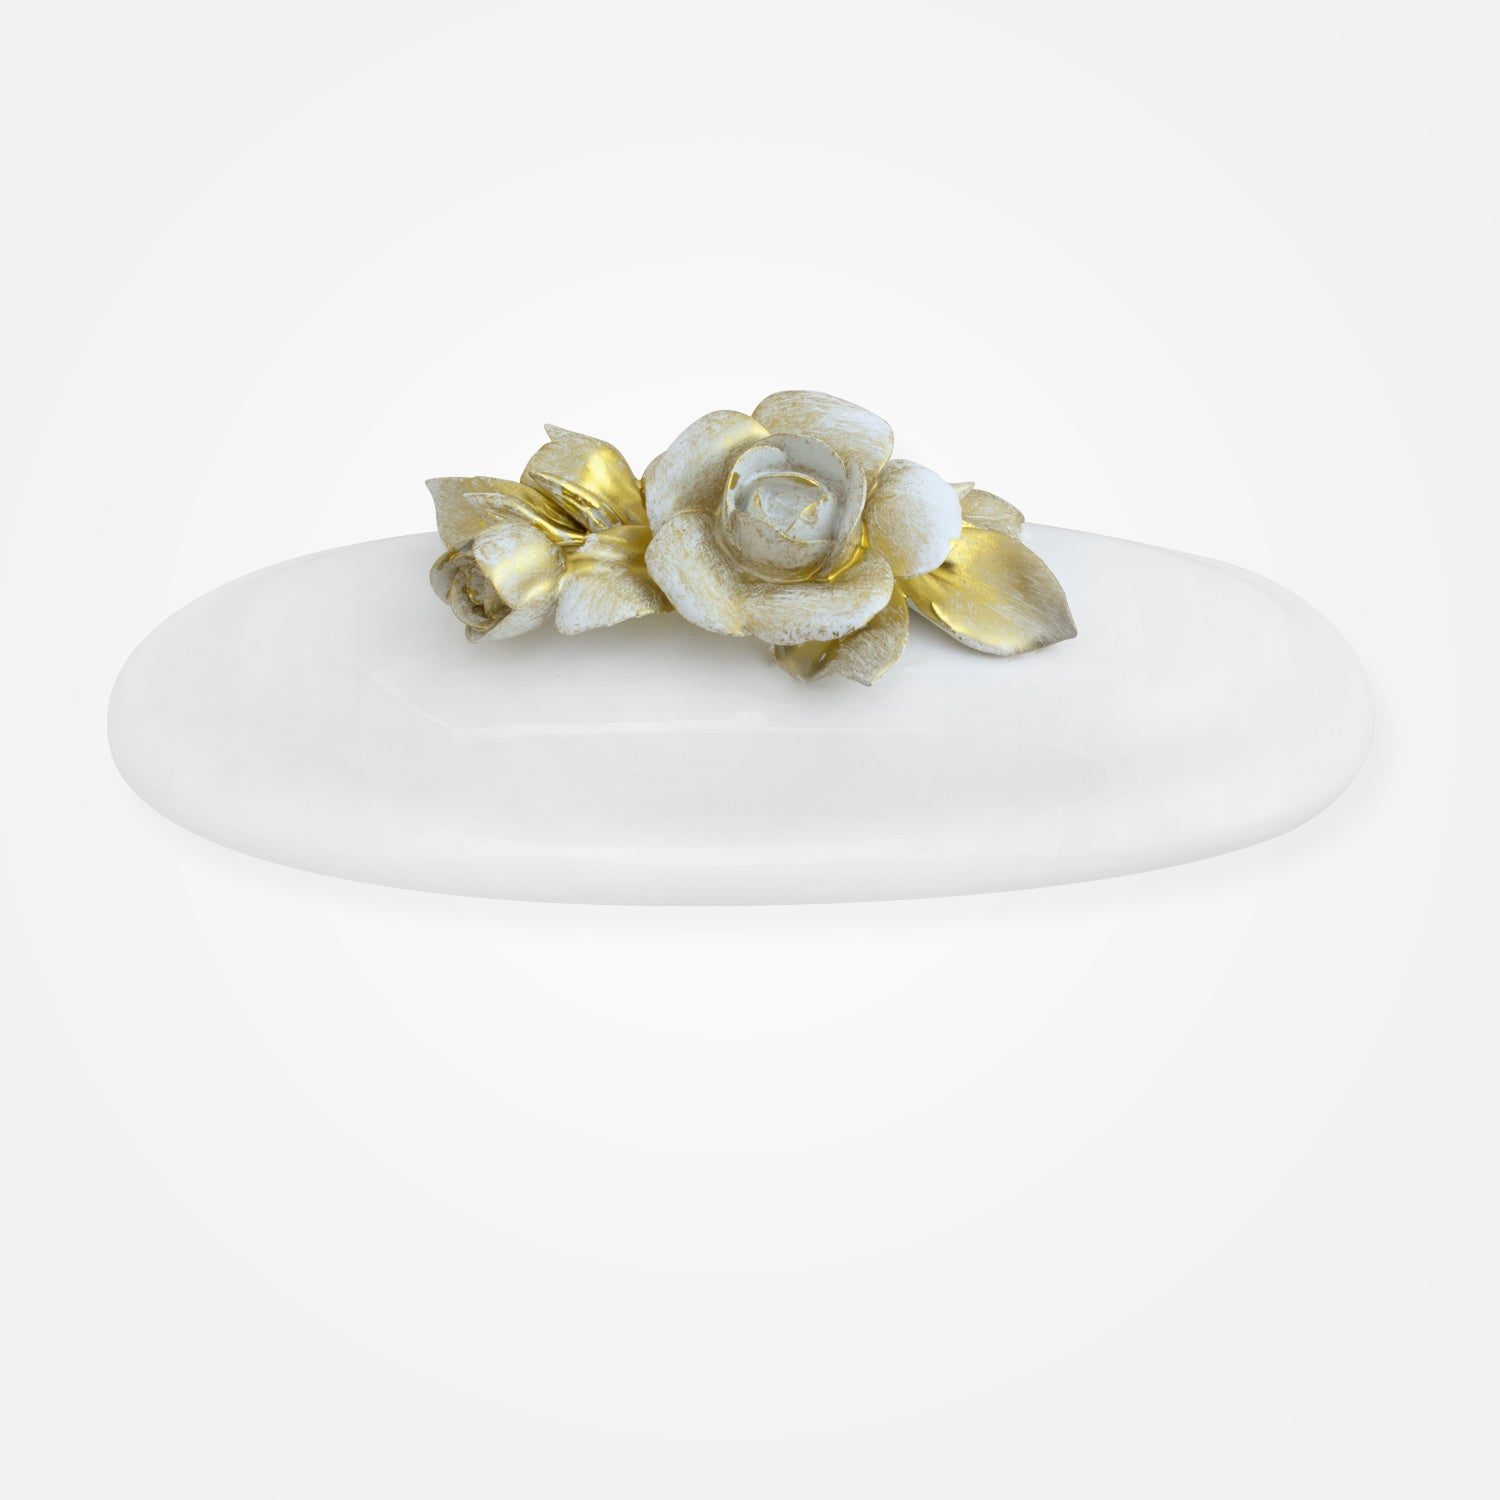 Oval Bowl Topped with Golden Flowers by I. Borbone